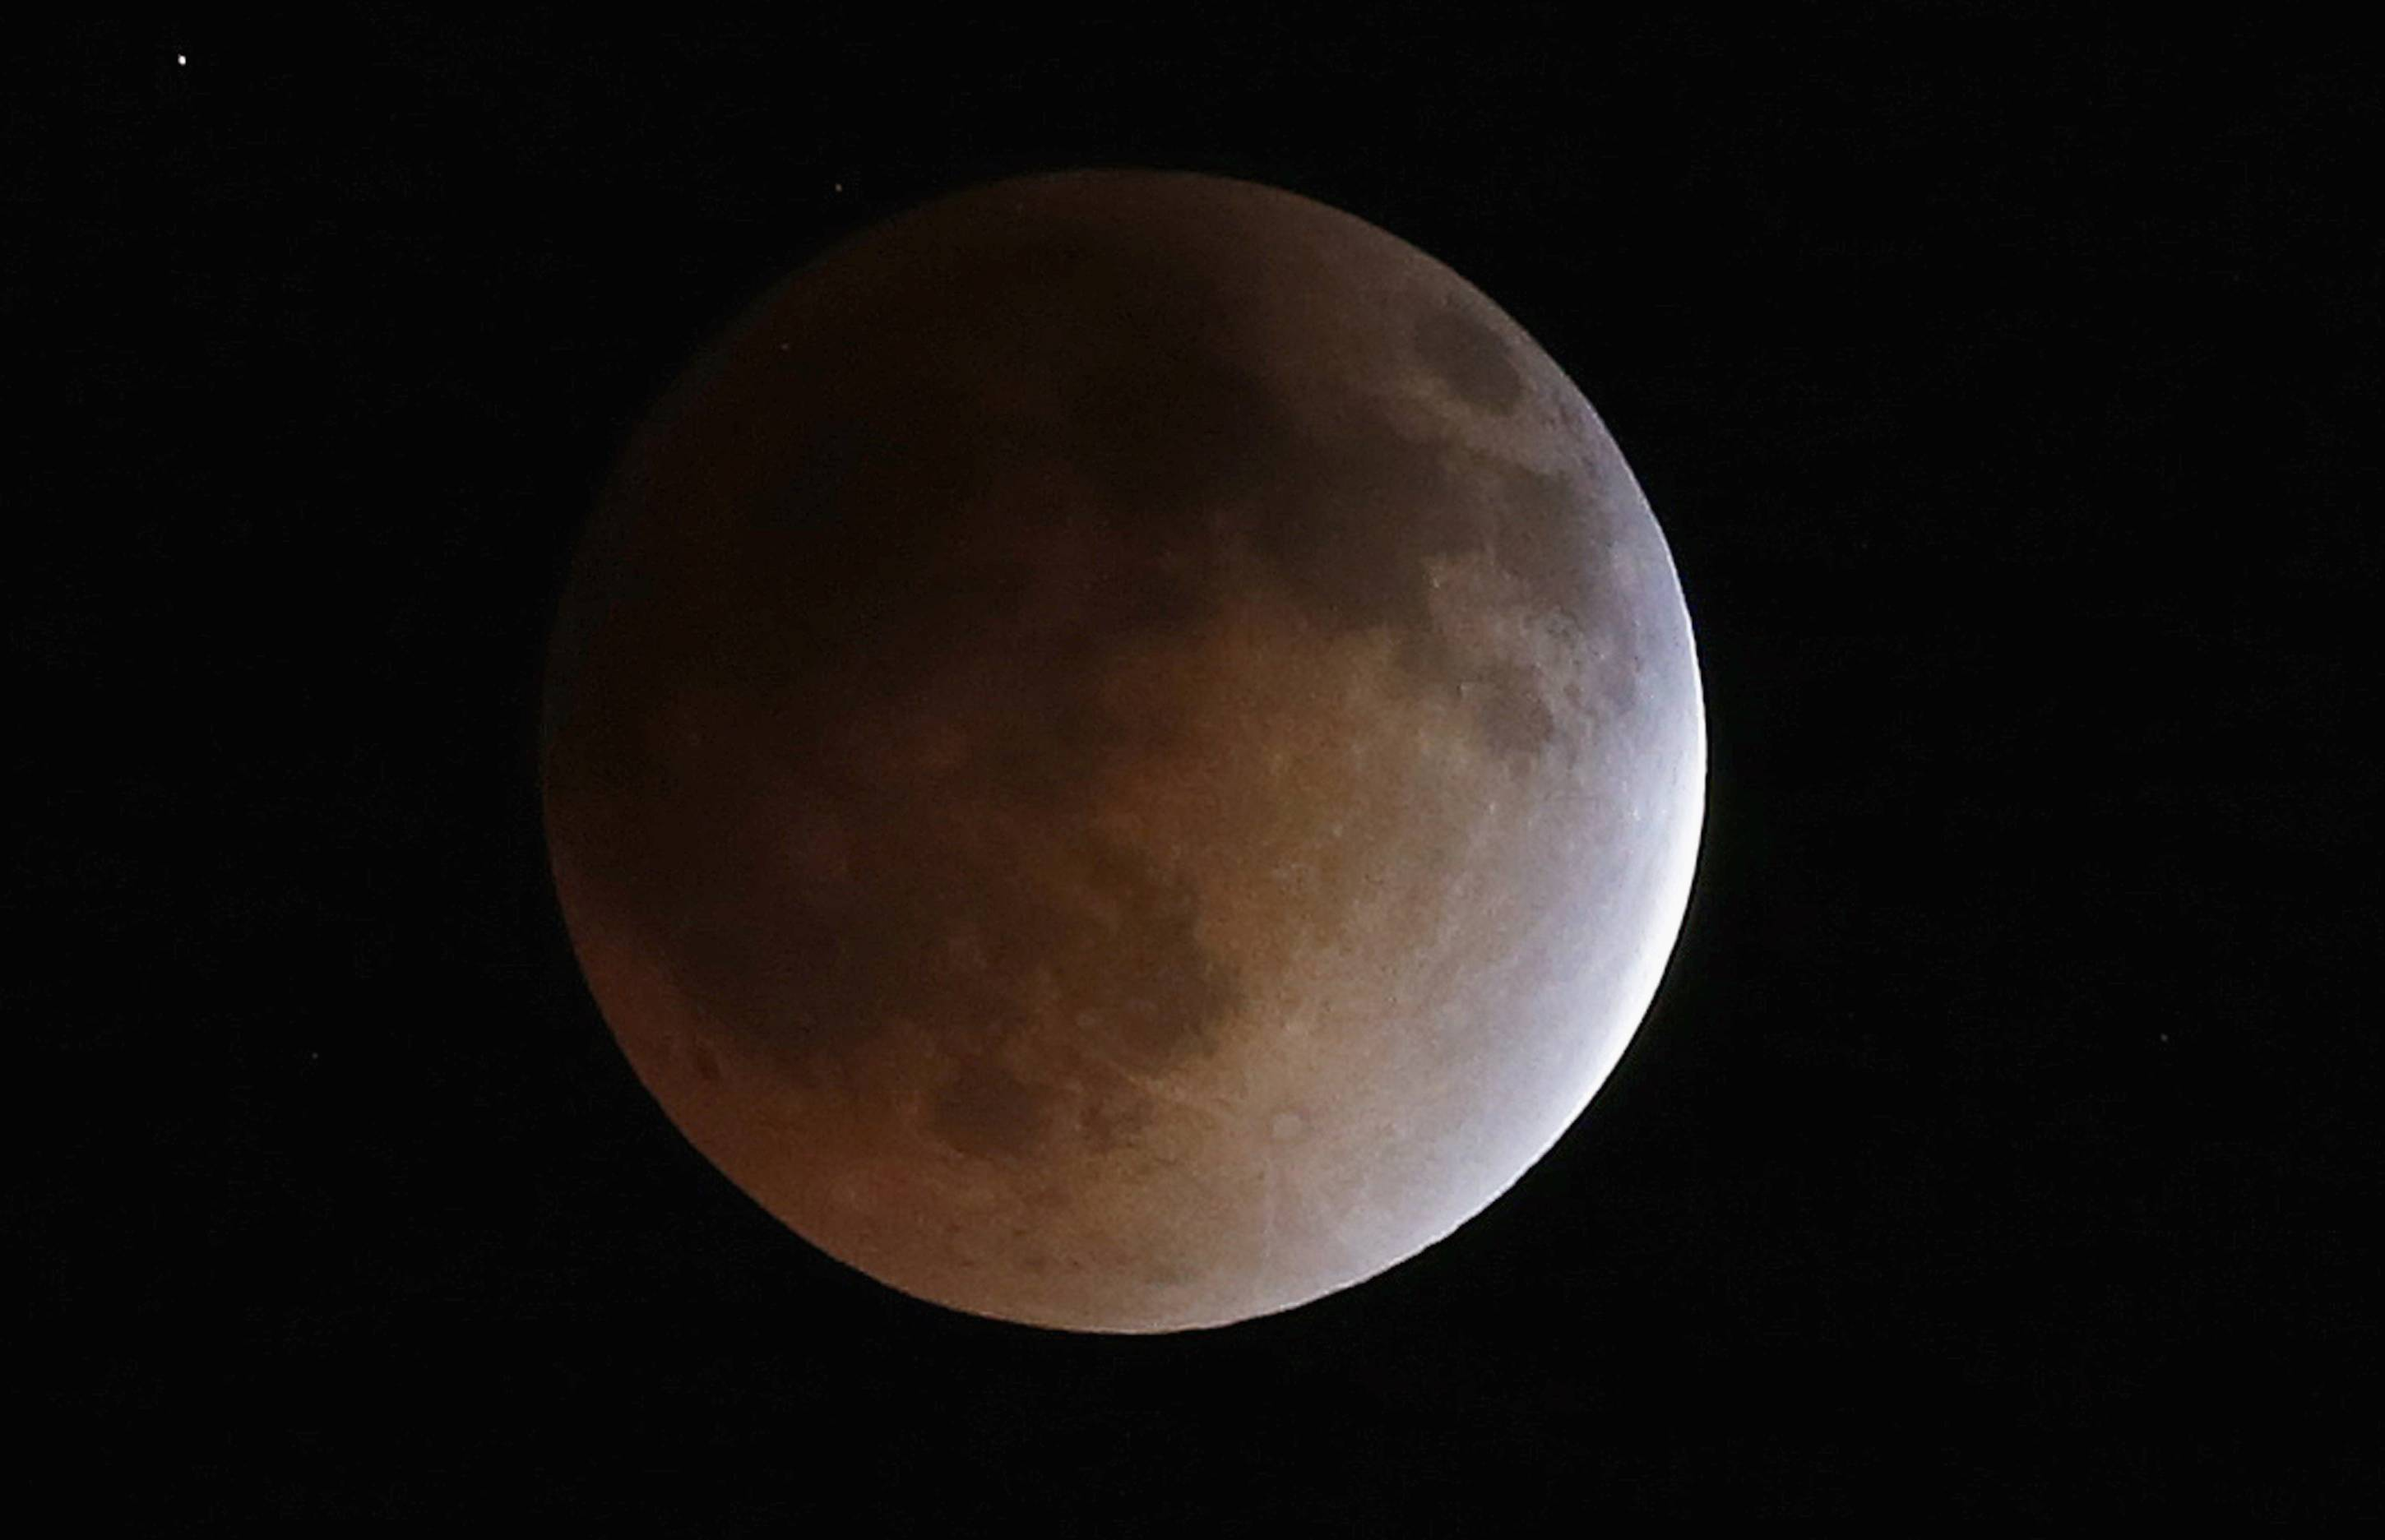 The moon turns an orange hue during a total lunar eclipse on Tuesday, April 15, 2014, in the sky above Phoenix. On April 29, the Southern Hemisphere will be treated to a type of solar eclipse. In all, four eclipses will occur this year, two lunar and two solar.